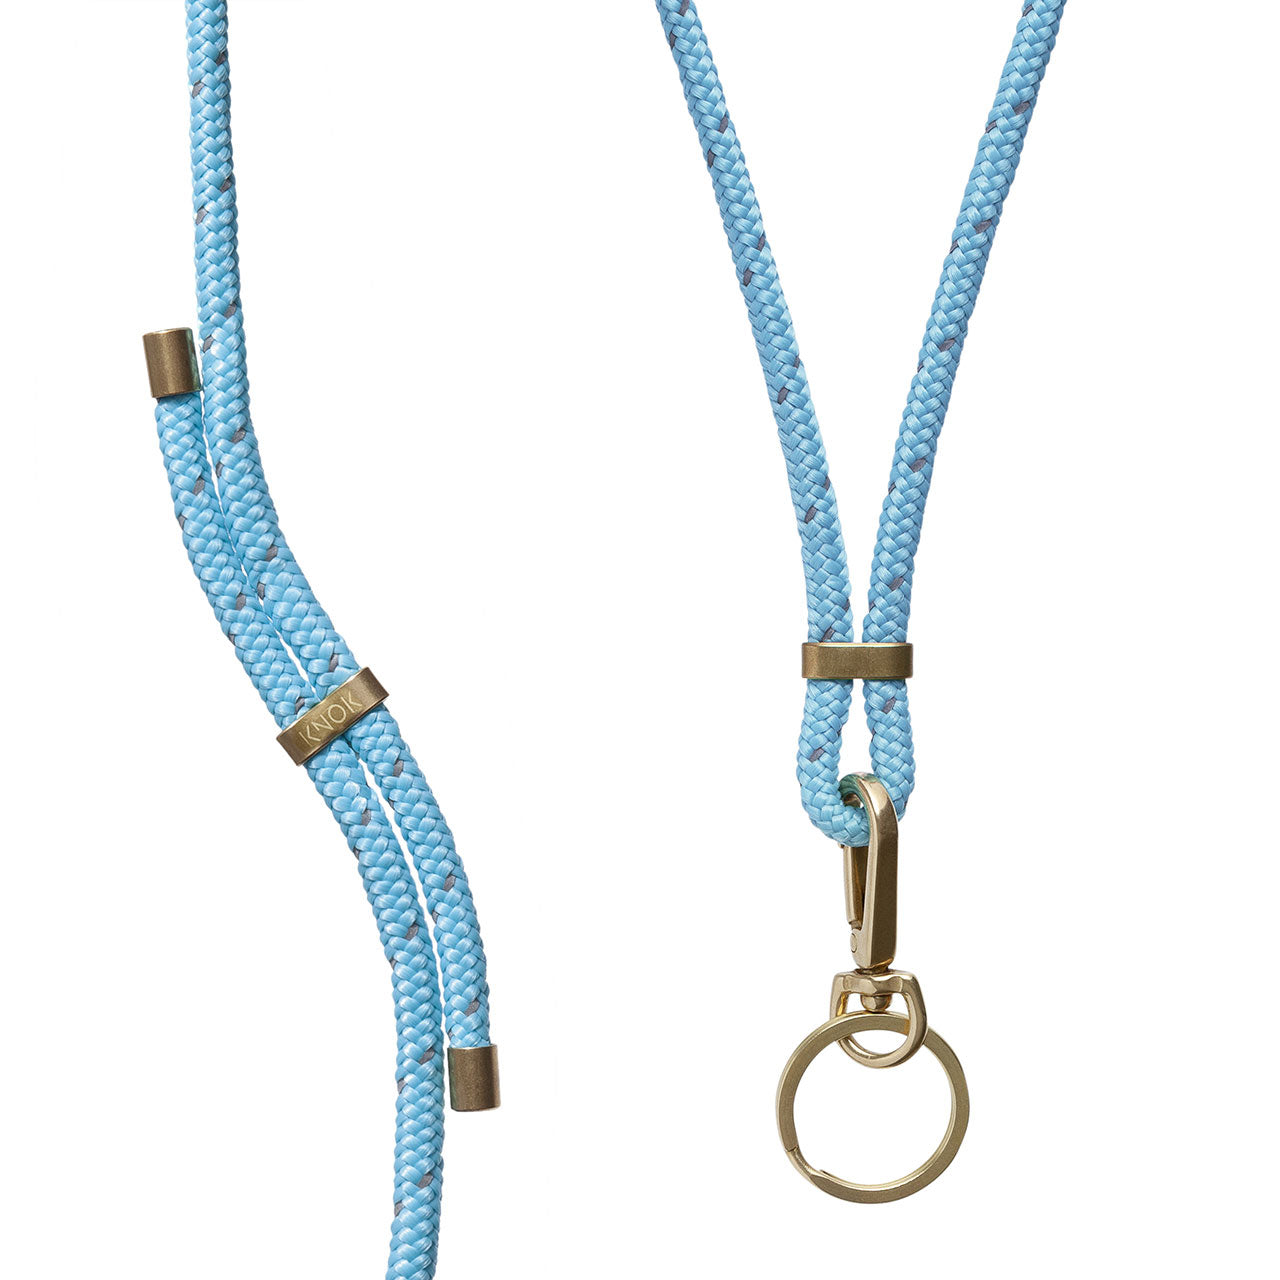 KEY HOLDER (TURQUOISE REFLECT) - KNOK STORE